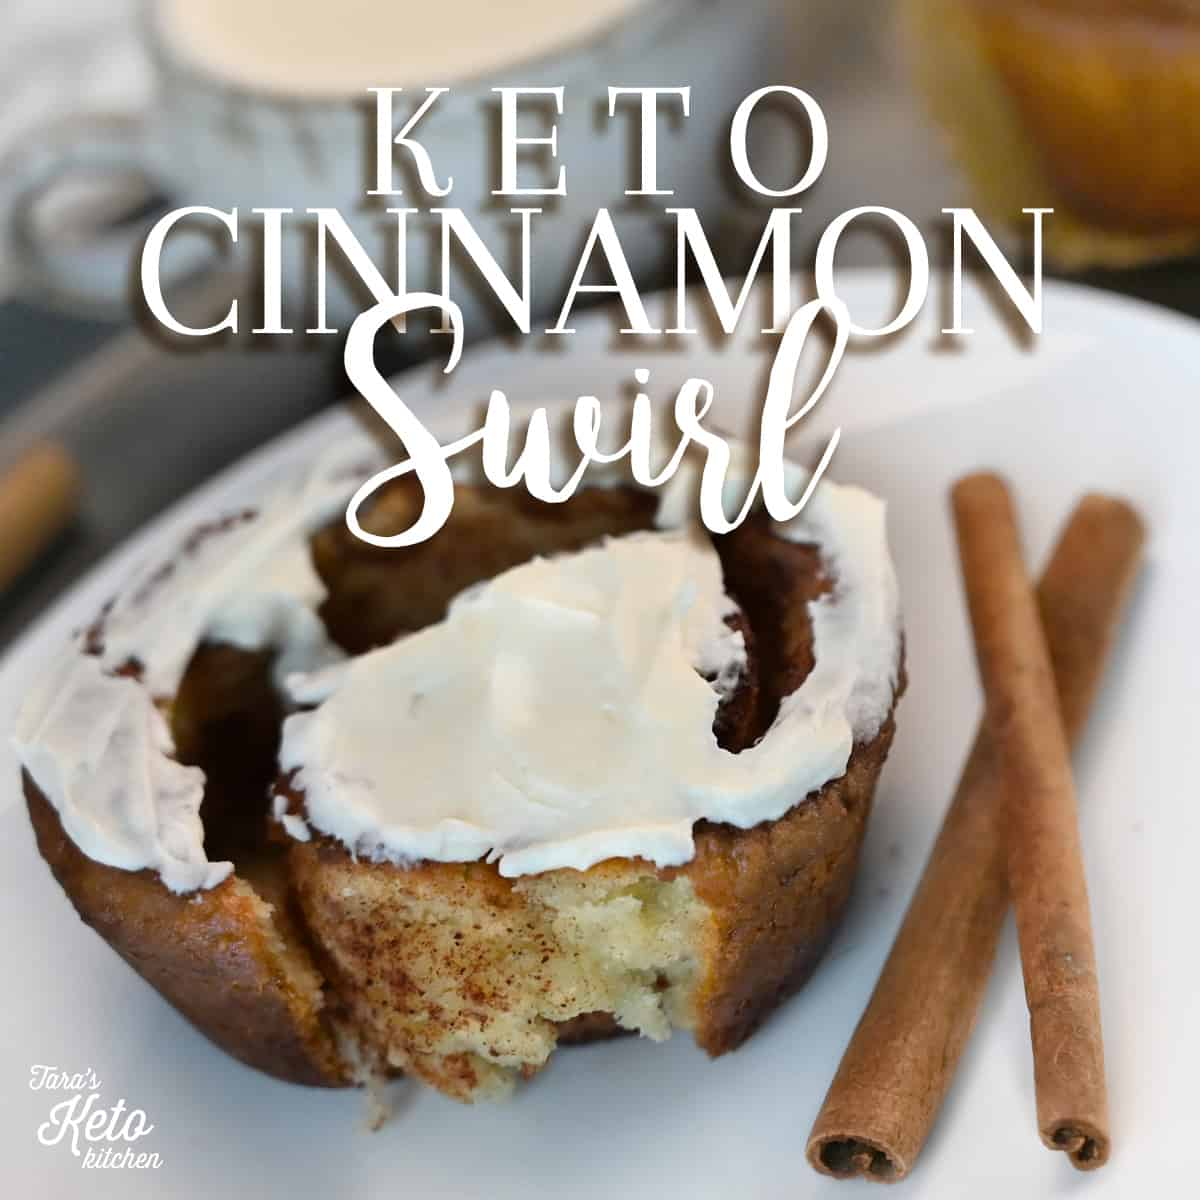 Keto Cinnamon Swirl with frosting with title